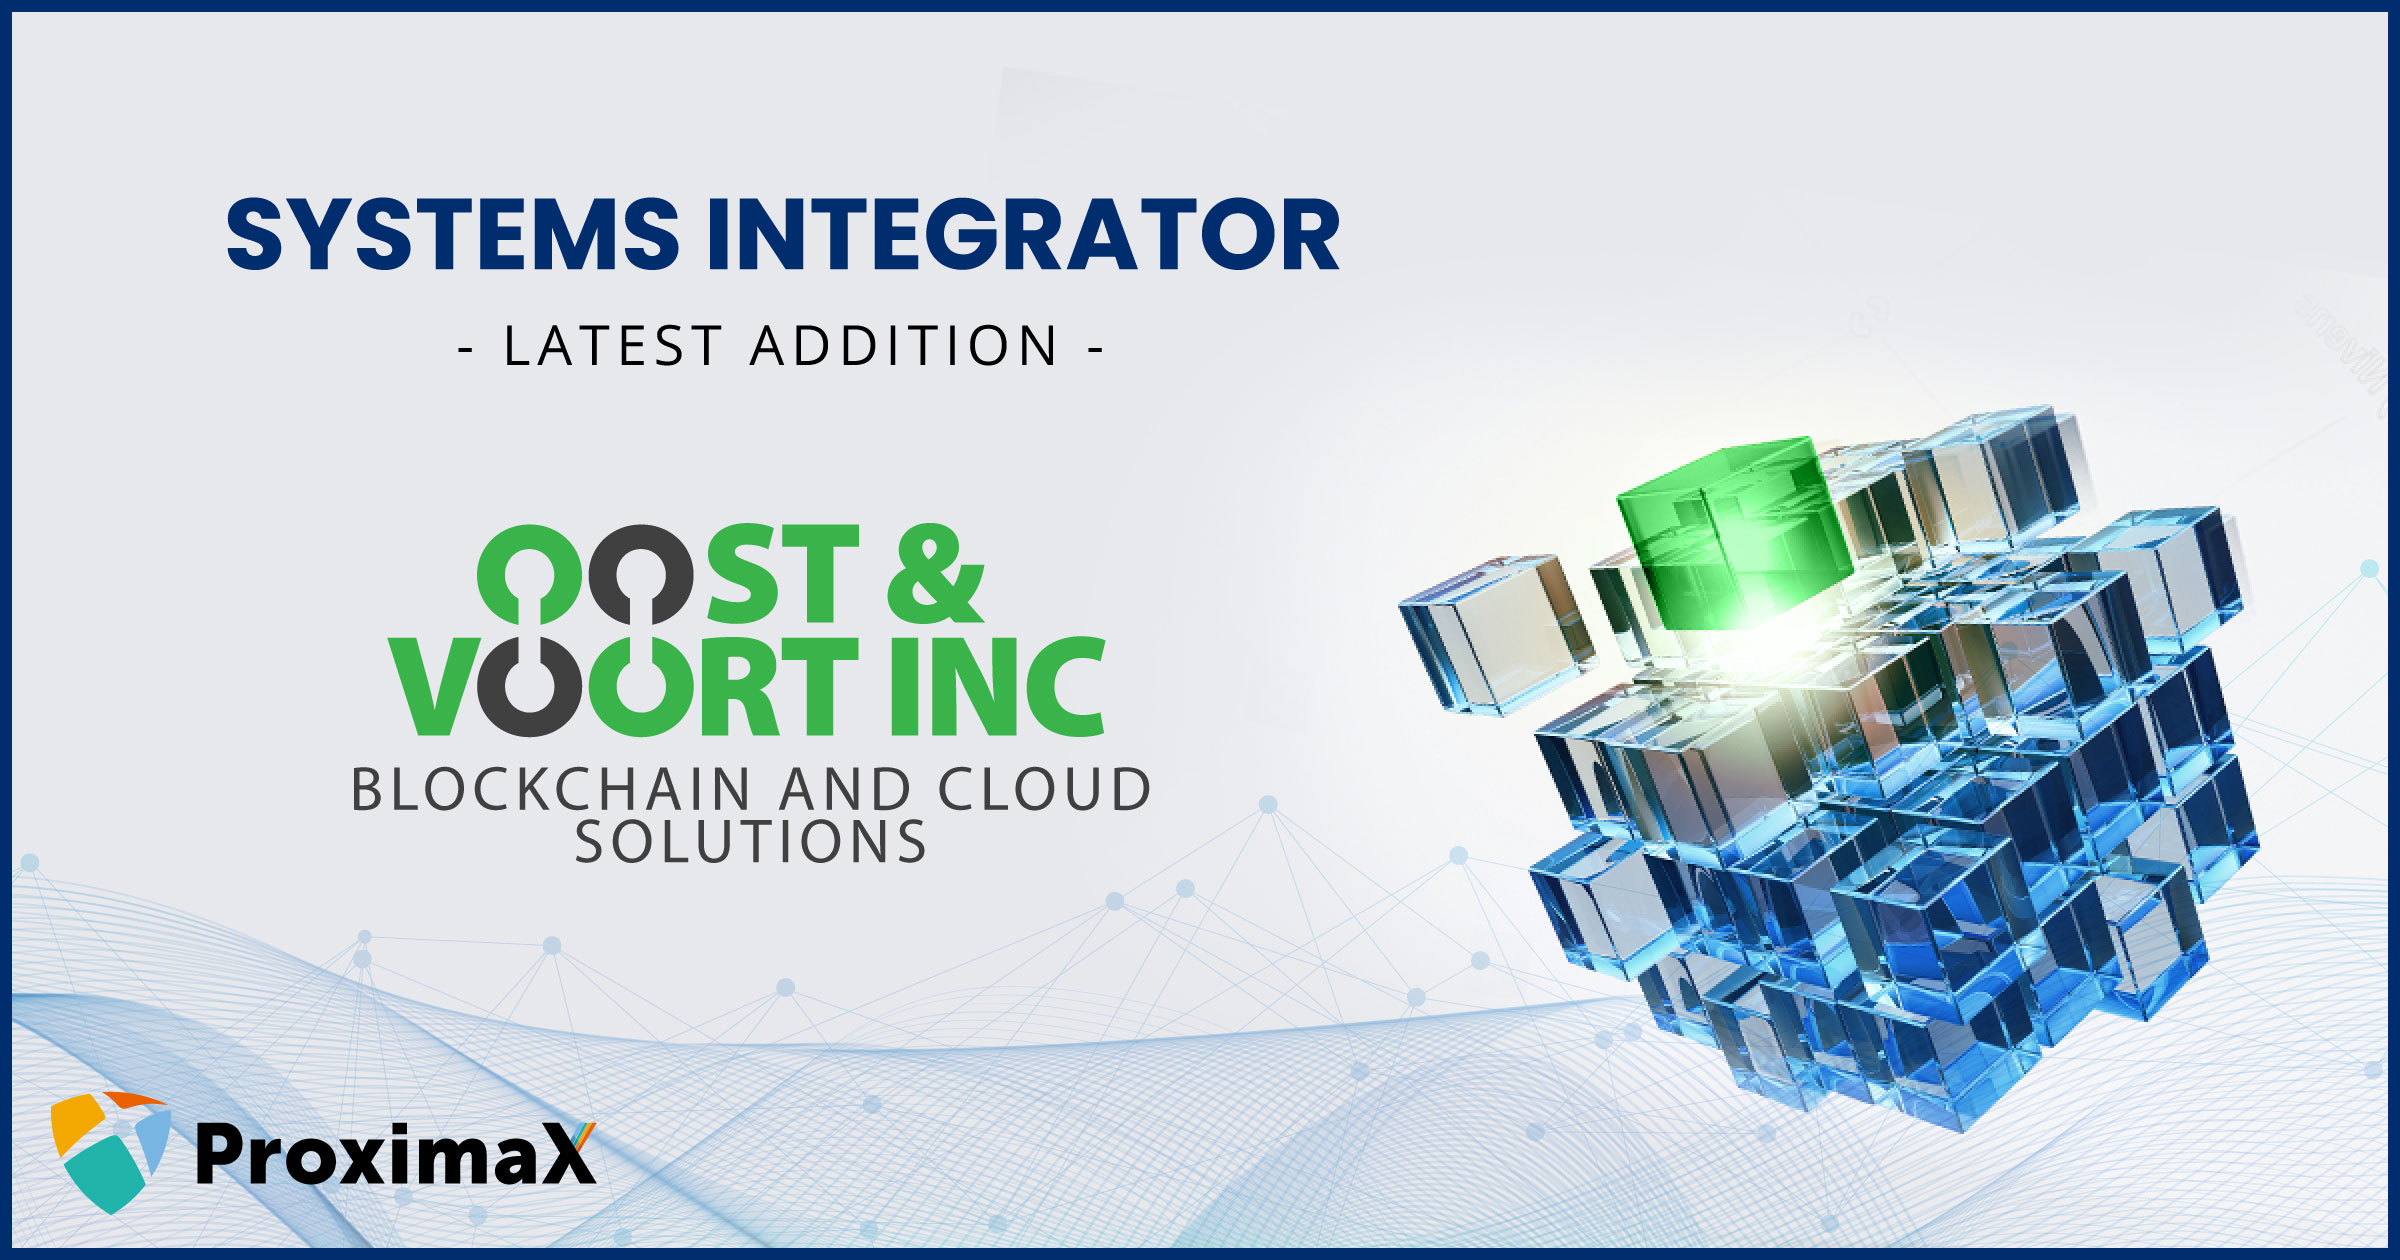 Oost & Voort Inc signs up as ProximaX Systems Integrator